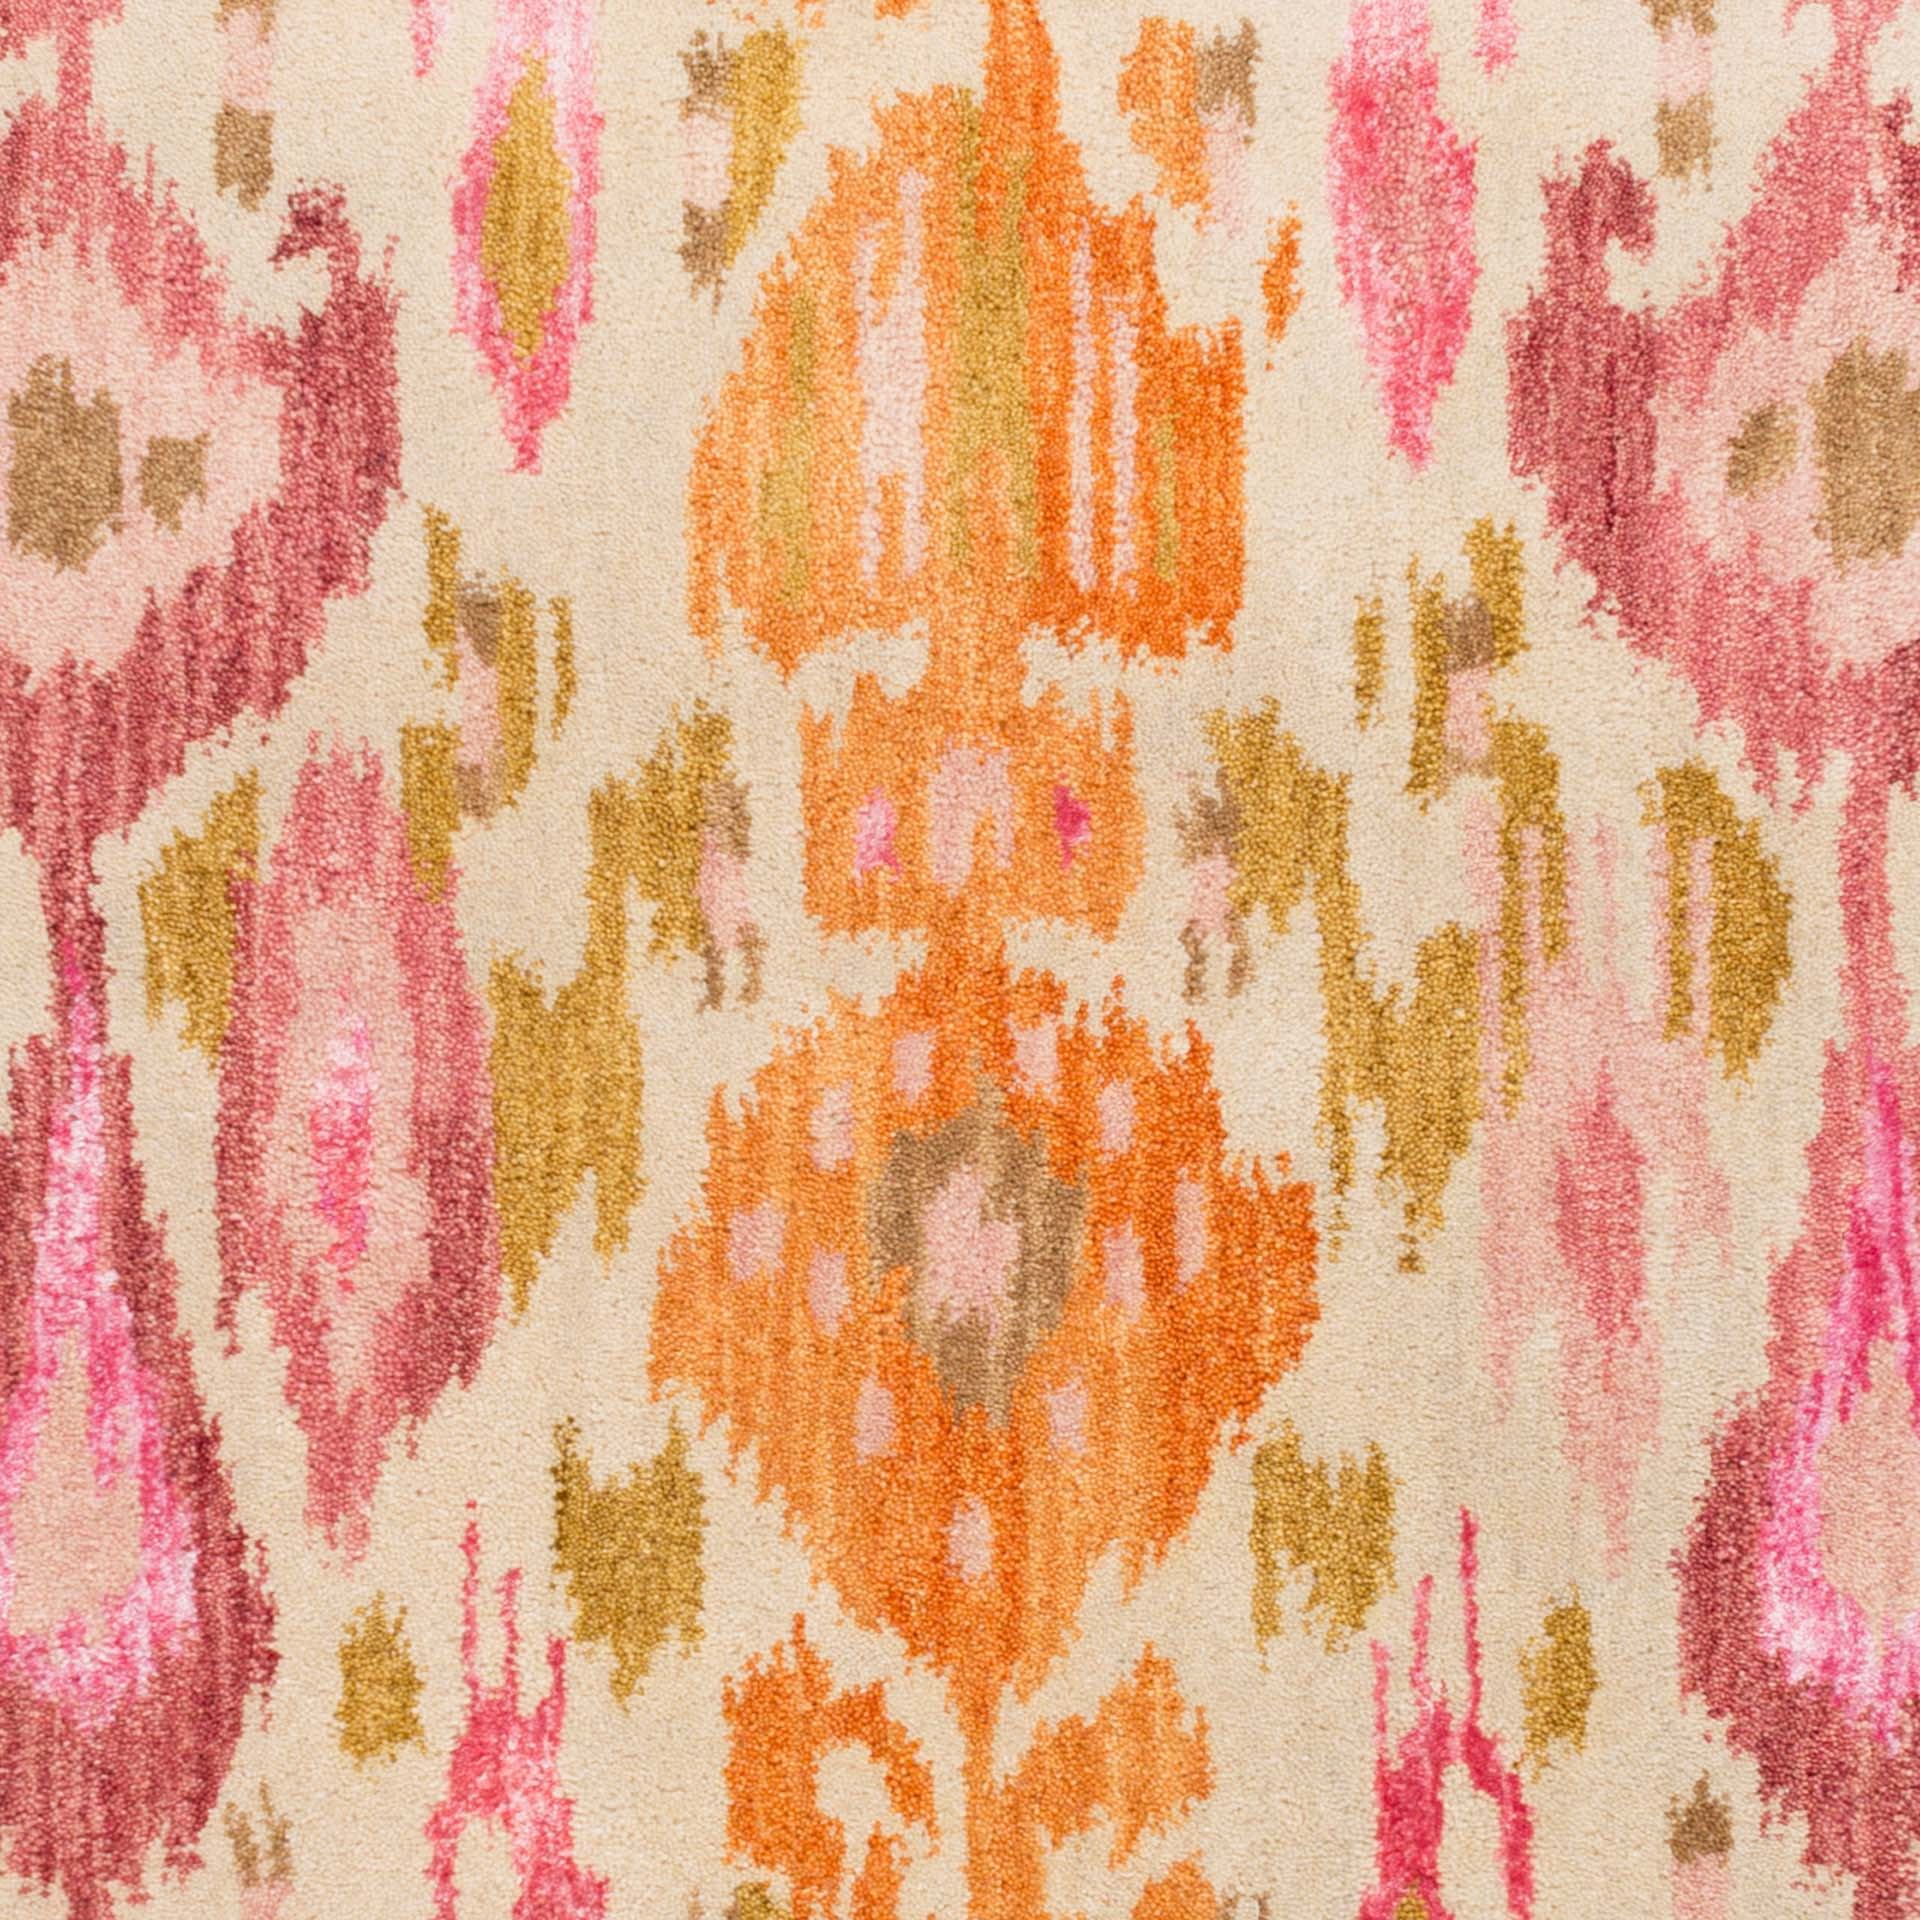 Contemporary hand-tufted area rug from India with bright yellow and pink pattern - Pattern Detail